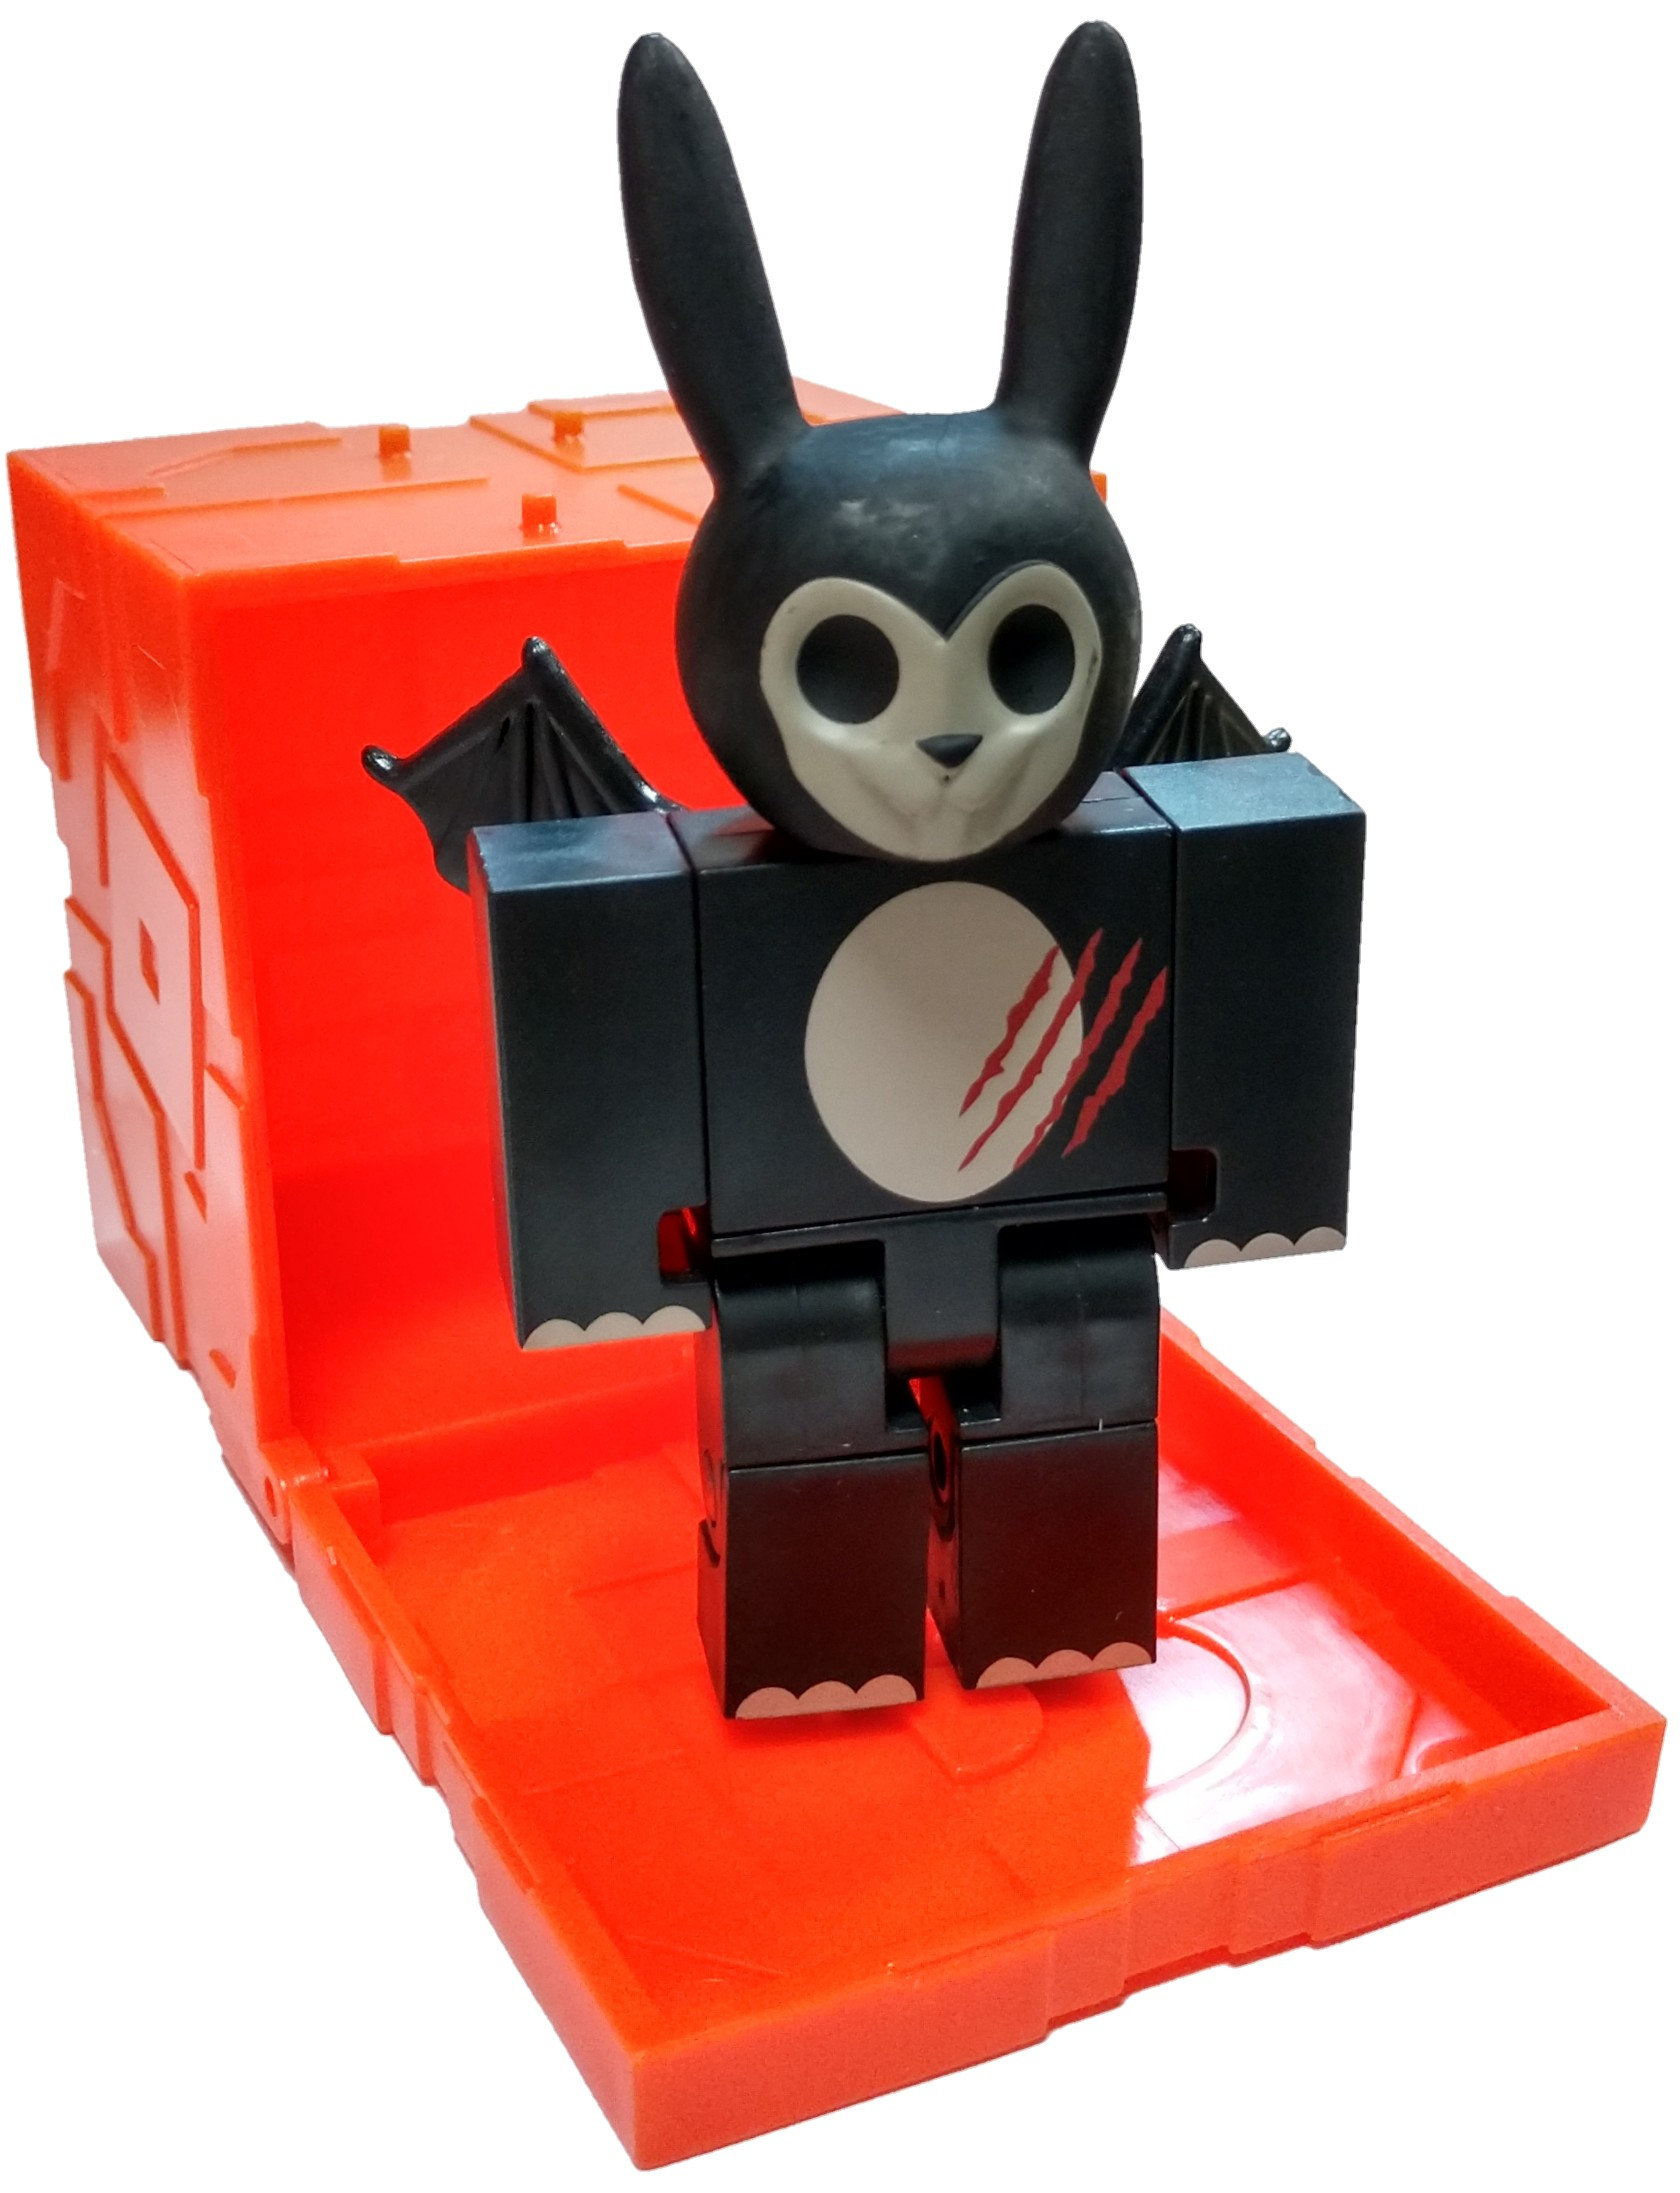 Roblox Series 6 Hunted Zombie Bunny Mini Figure With Orange Cube And Online Code No Packaging Walmartcom - videos matching dressing up like my haunted dolls roblox